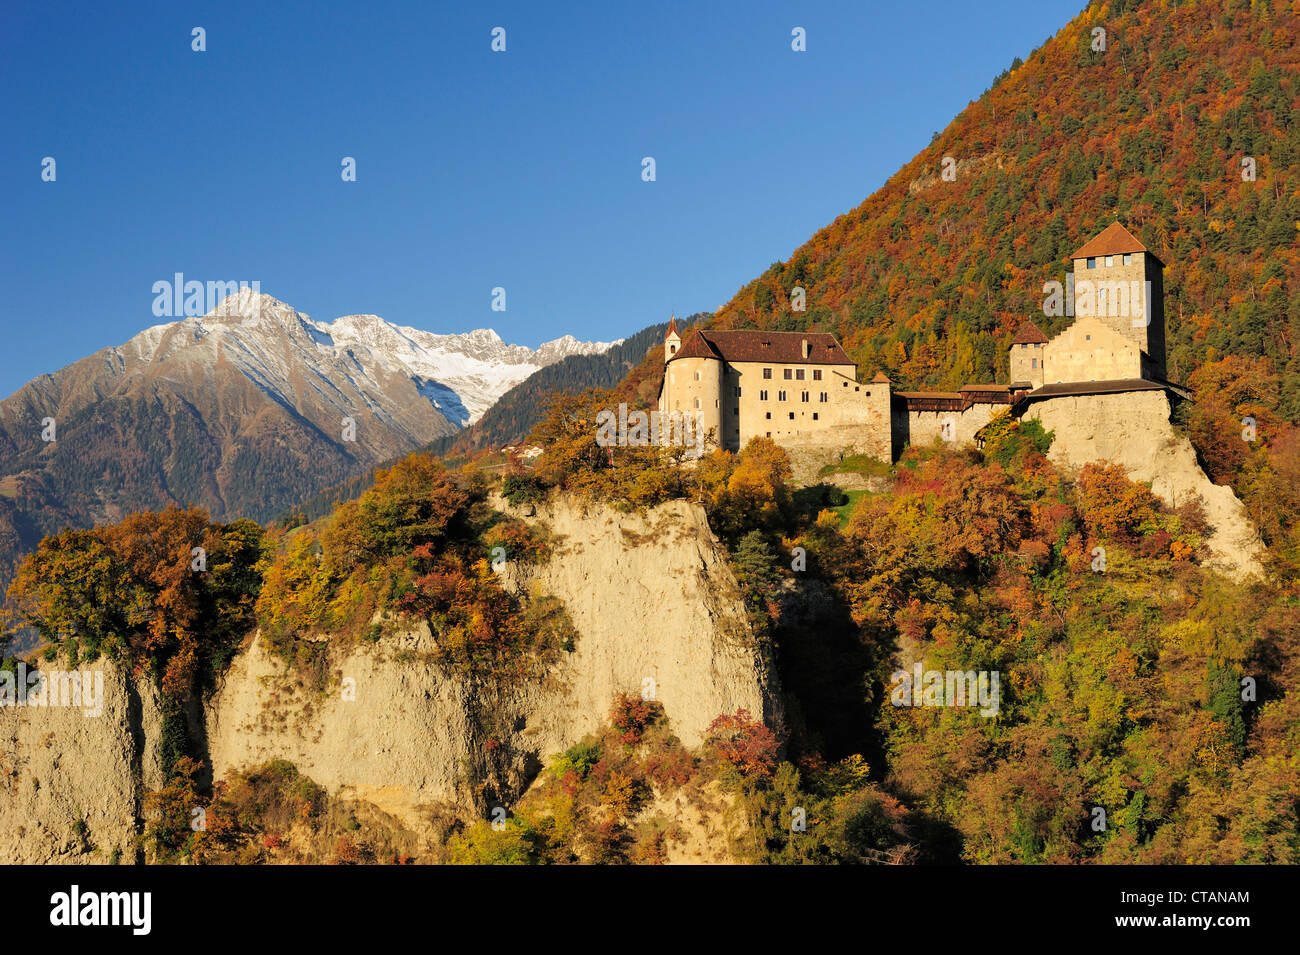 Castle Schloss Tirol with mountains in autumn colours and Texel range in background, Schloss Tirol, Meran, South - Stock Image